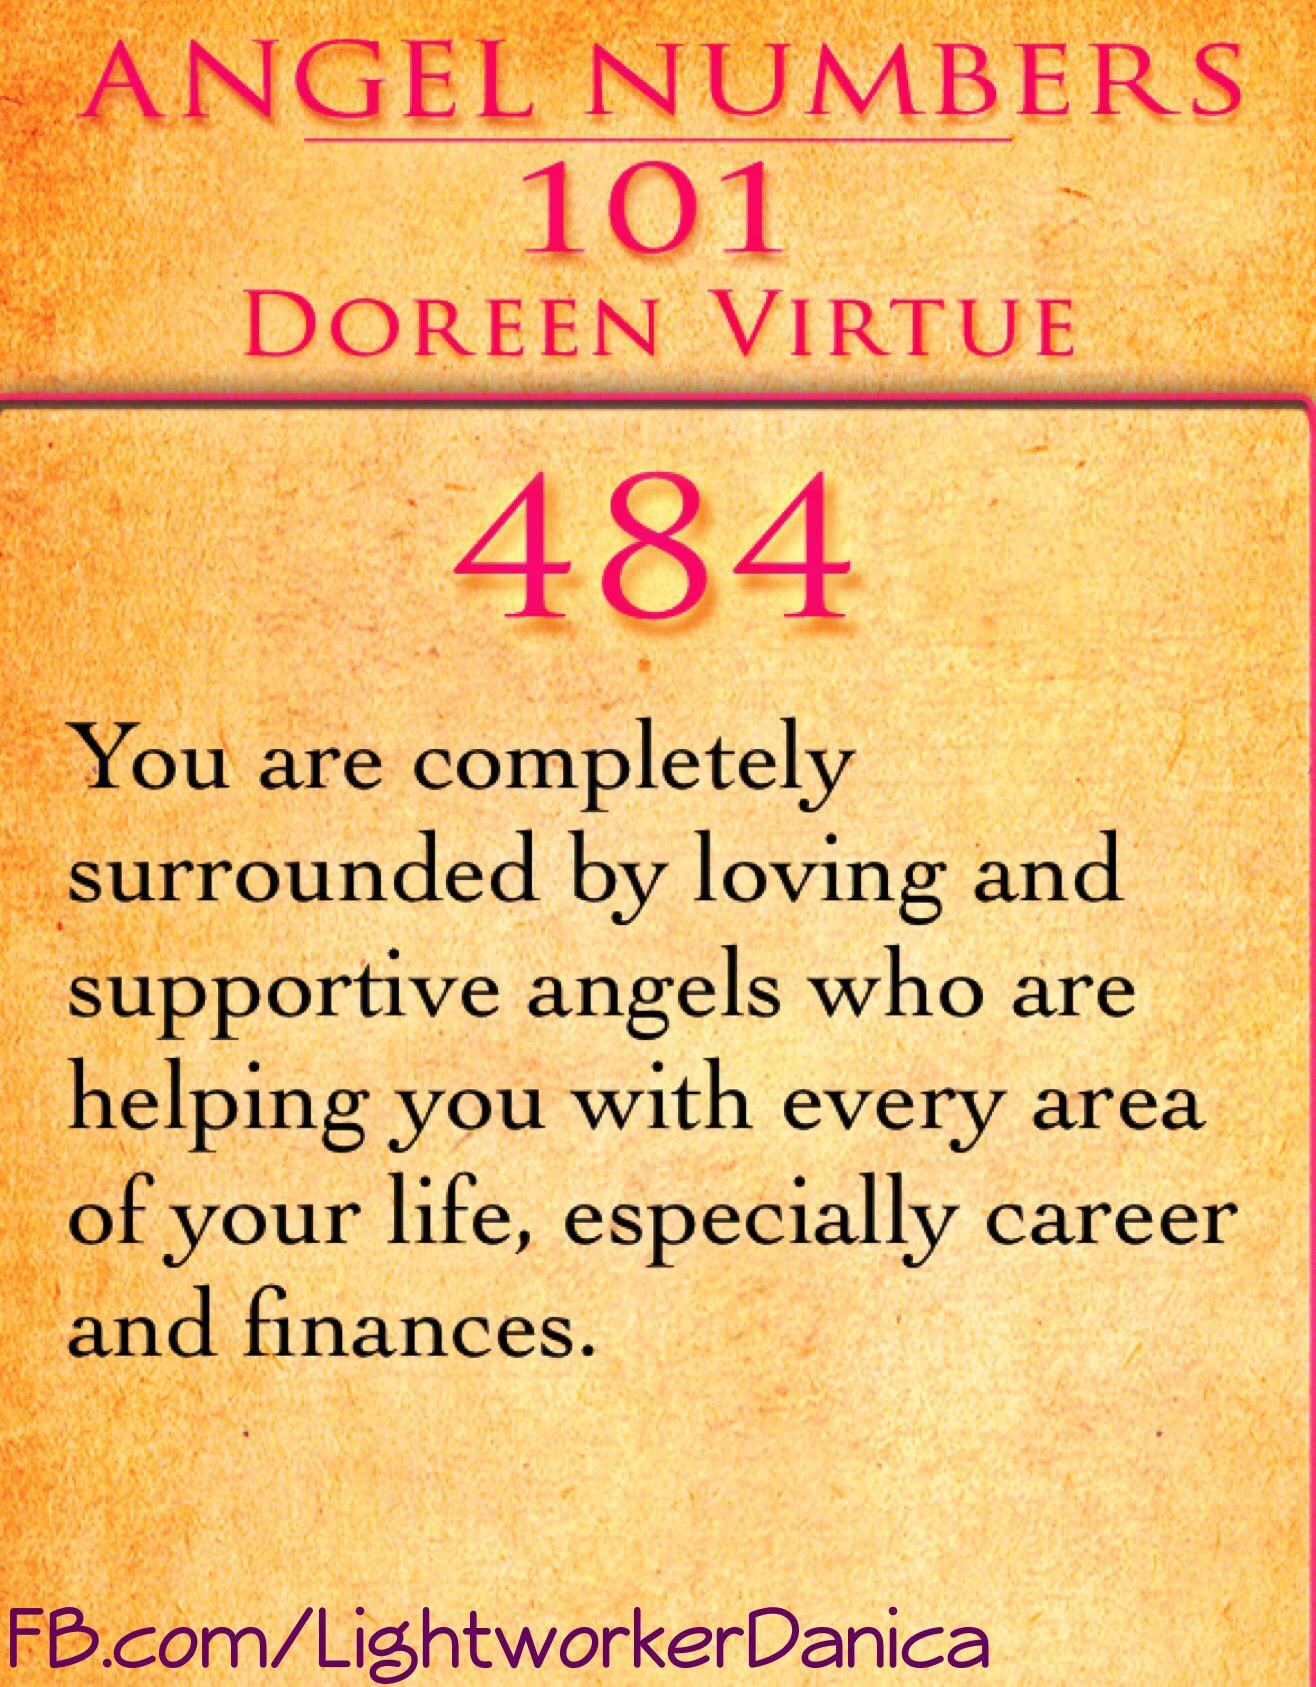 484:You are completely surrounded by loving and supportive angels who are  helping you with every area of your life, especially career and finances.